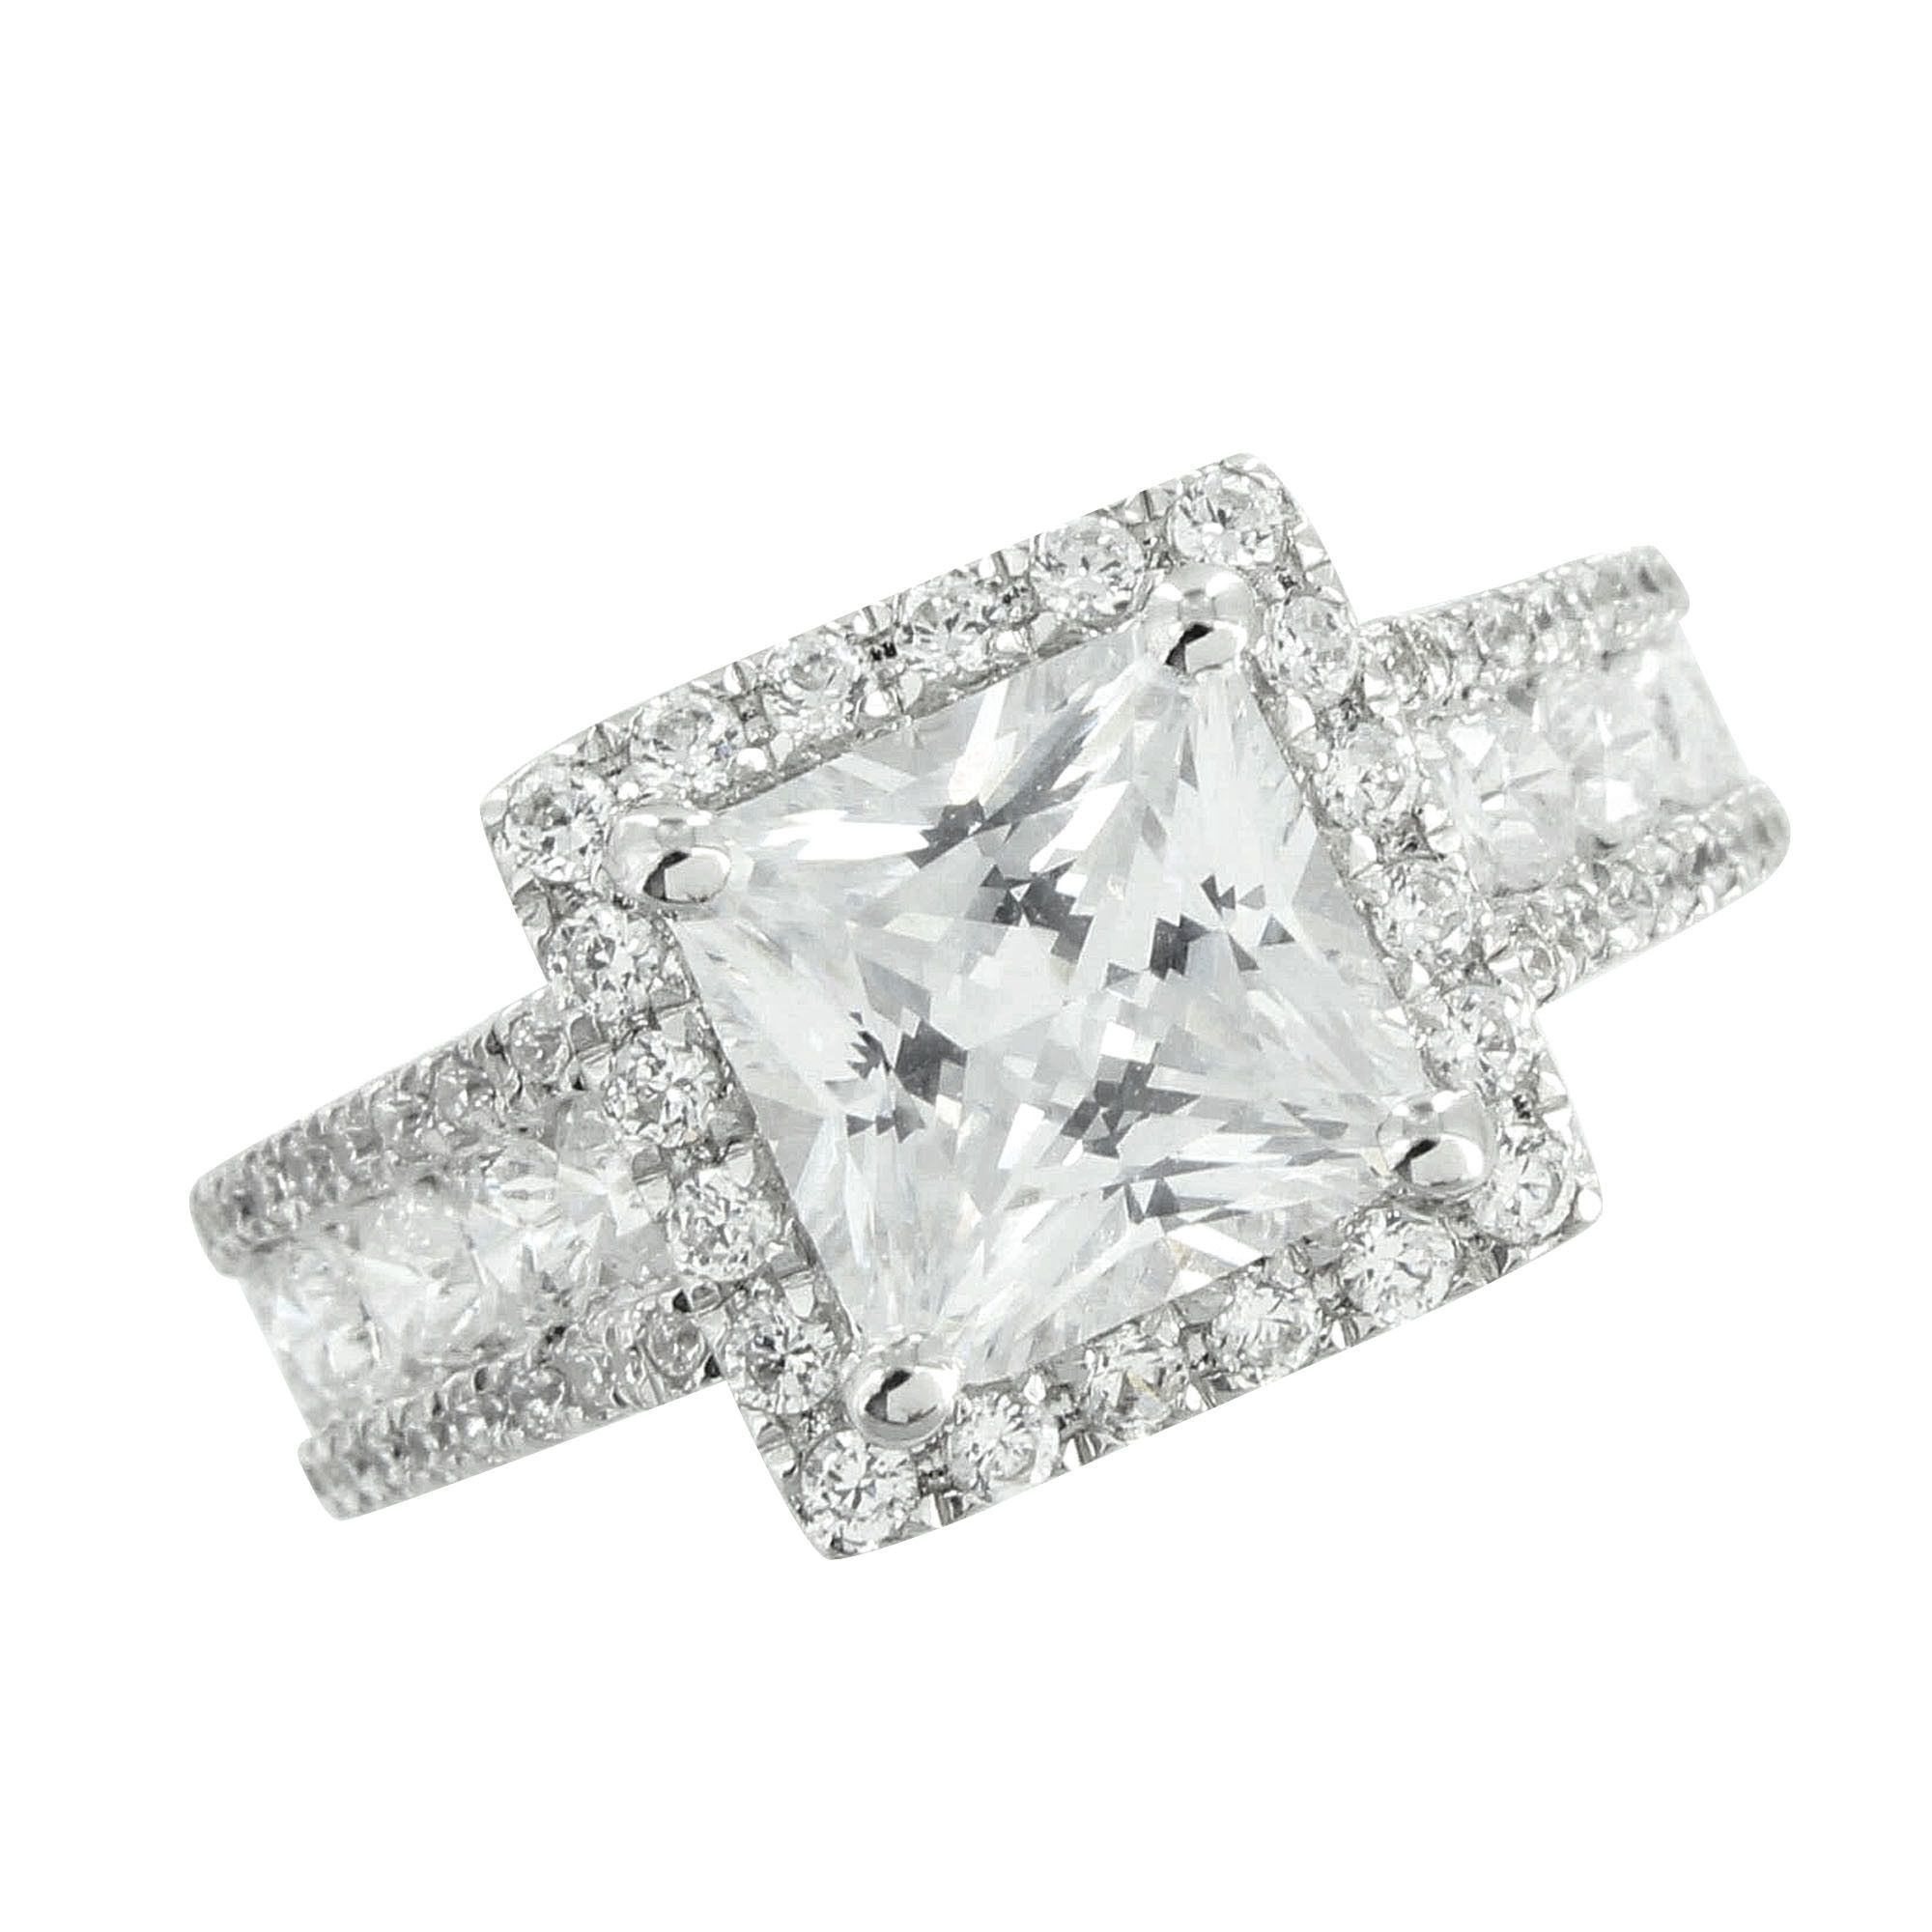 Princess cut solitaire ring wedding engagement simulated diamonds